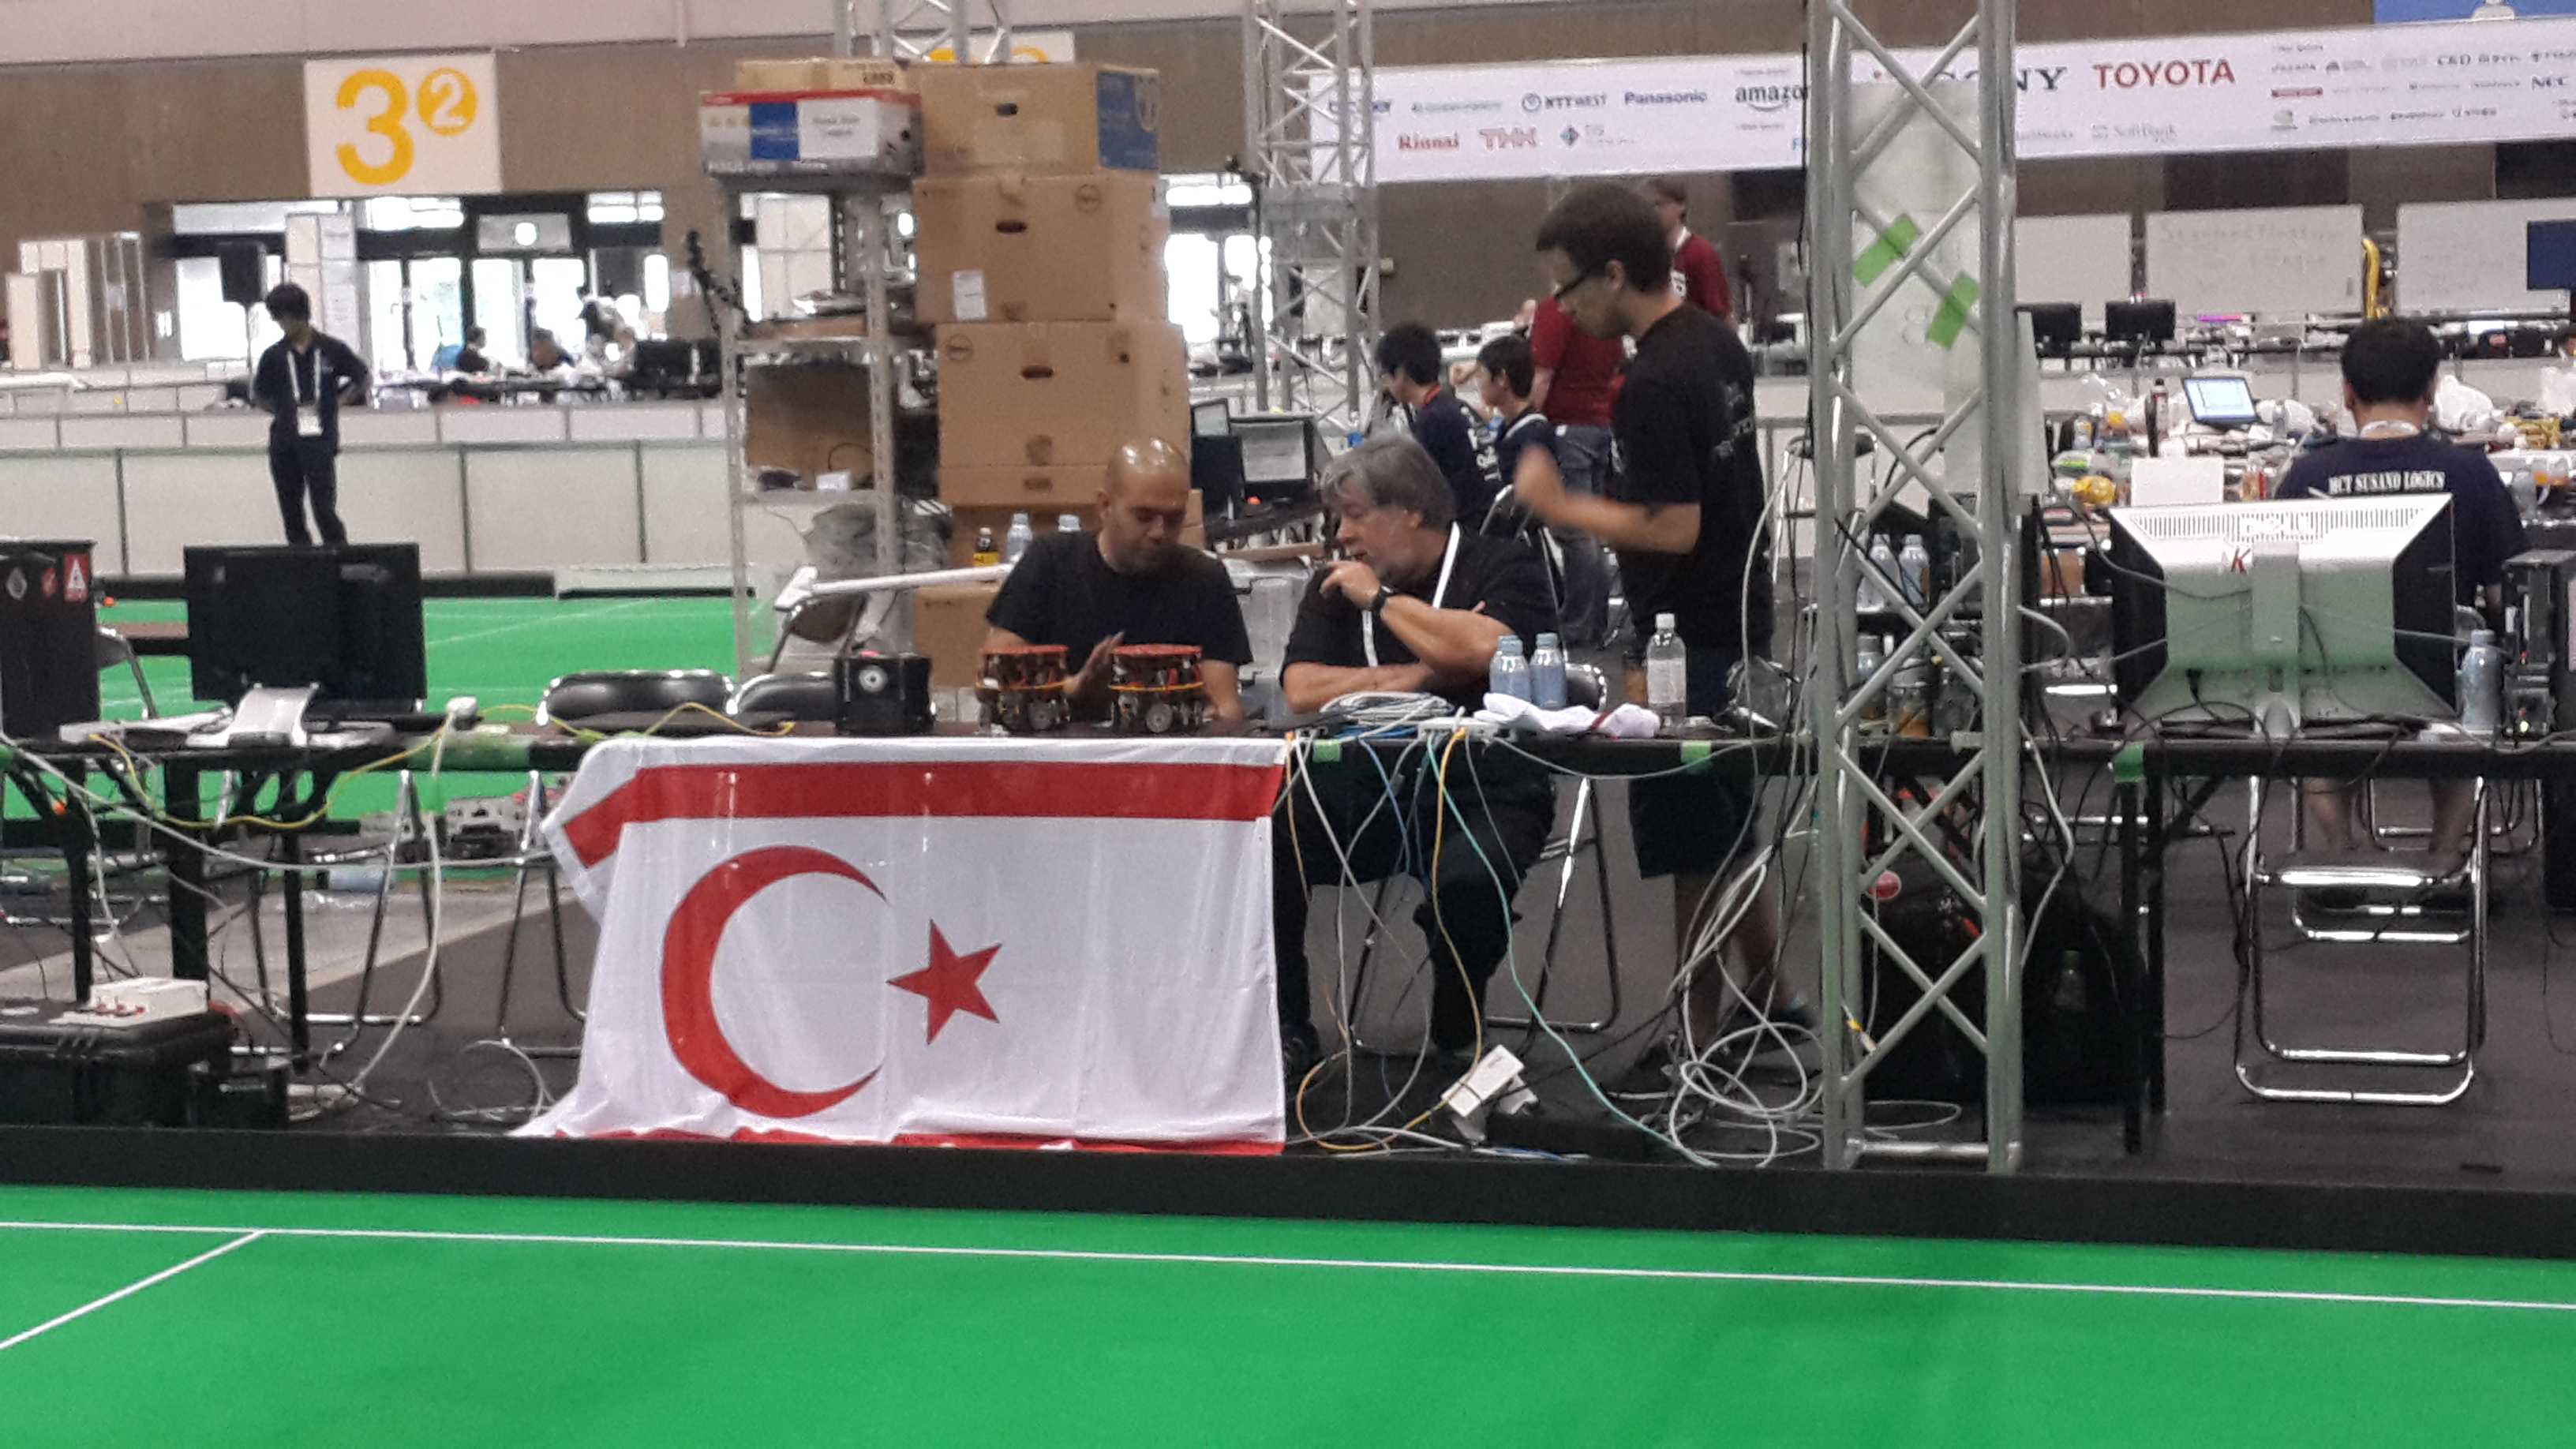 Steve Wozniak, Co-Founder of Apple Inc, showed great interest in the robotic soccer team NEUIslanders competing in Robot Soccer World Cup (RoboCup) 2017